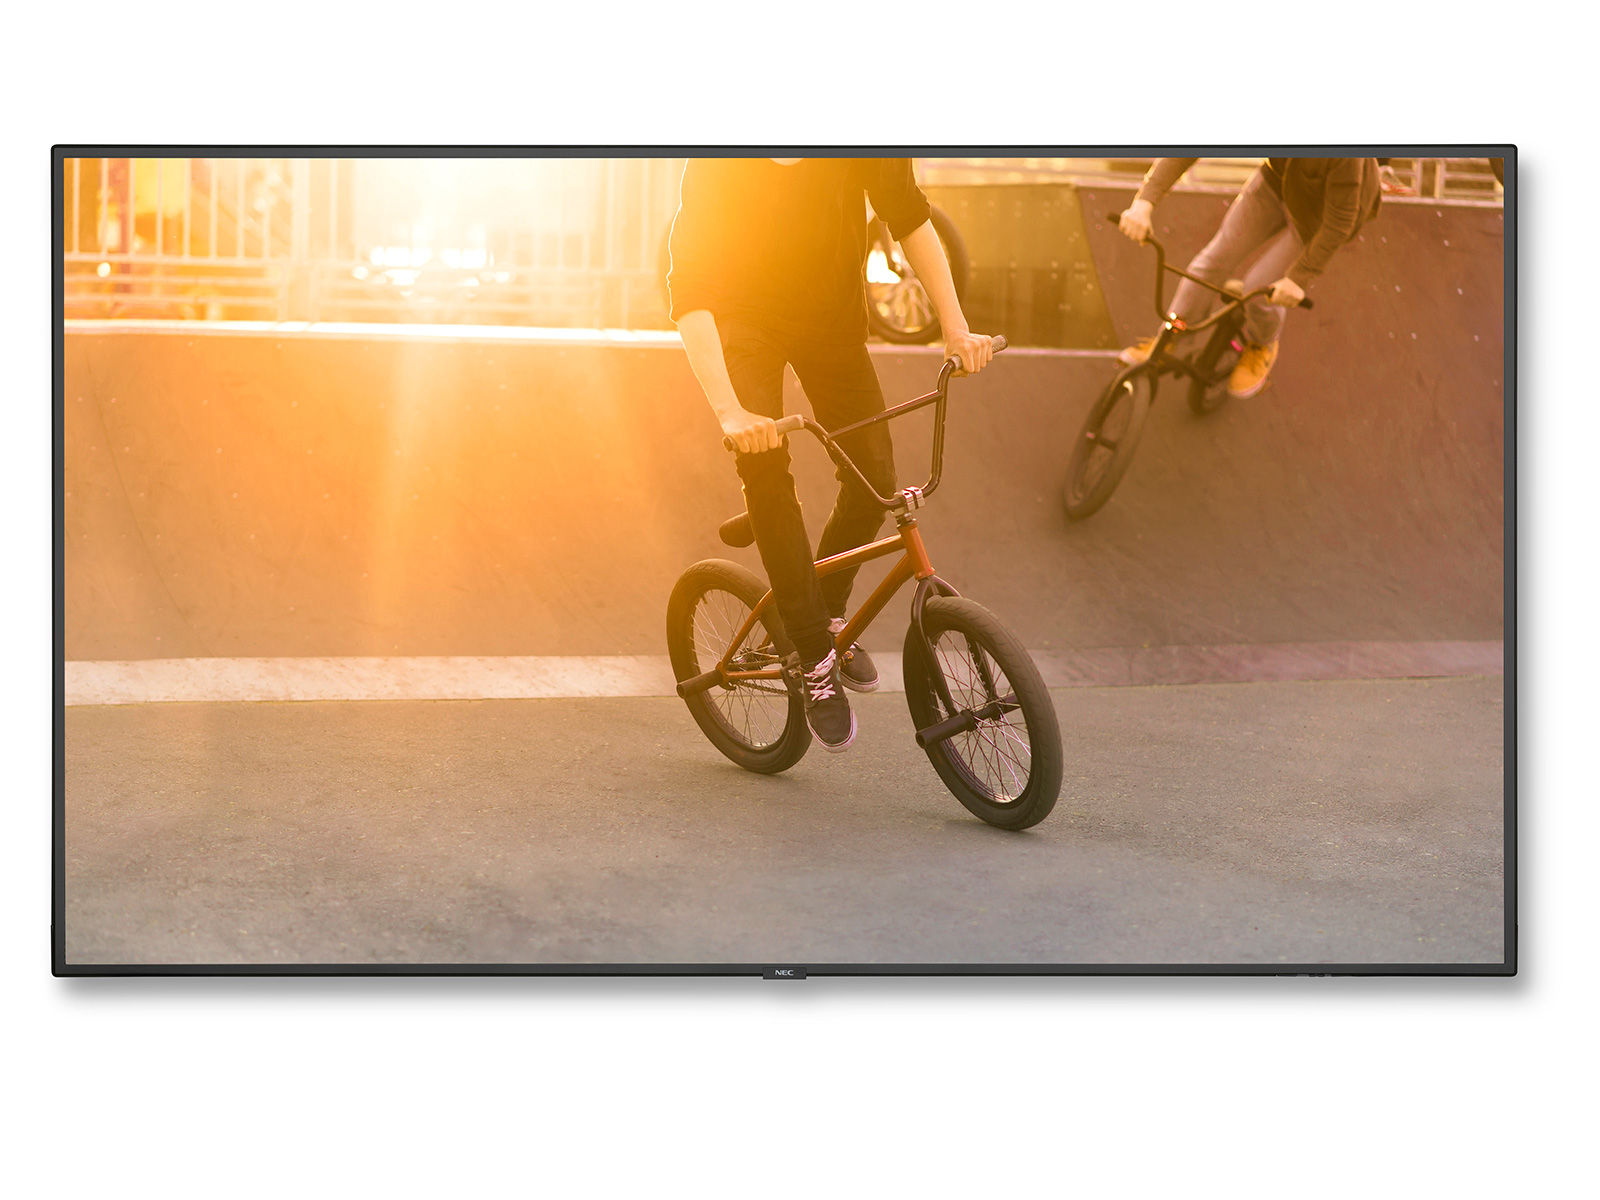 Televisions & Recorders 75in P754Q 4K Digital Signage